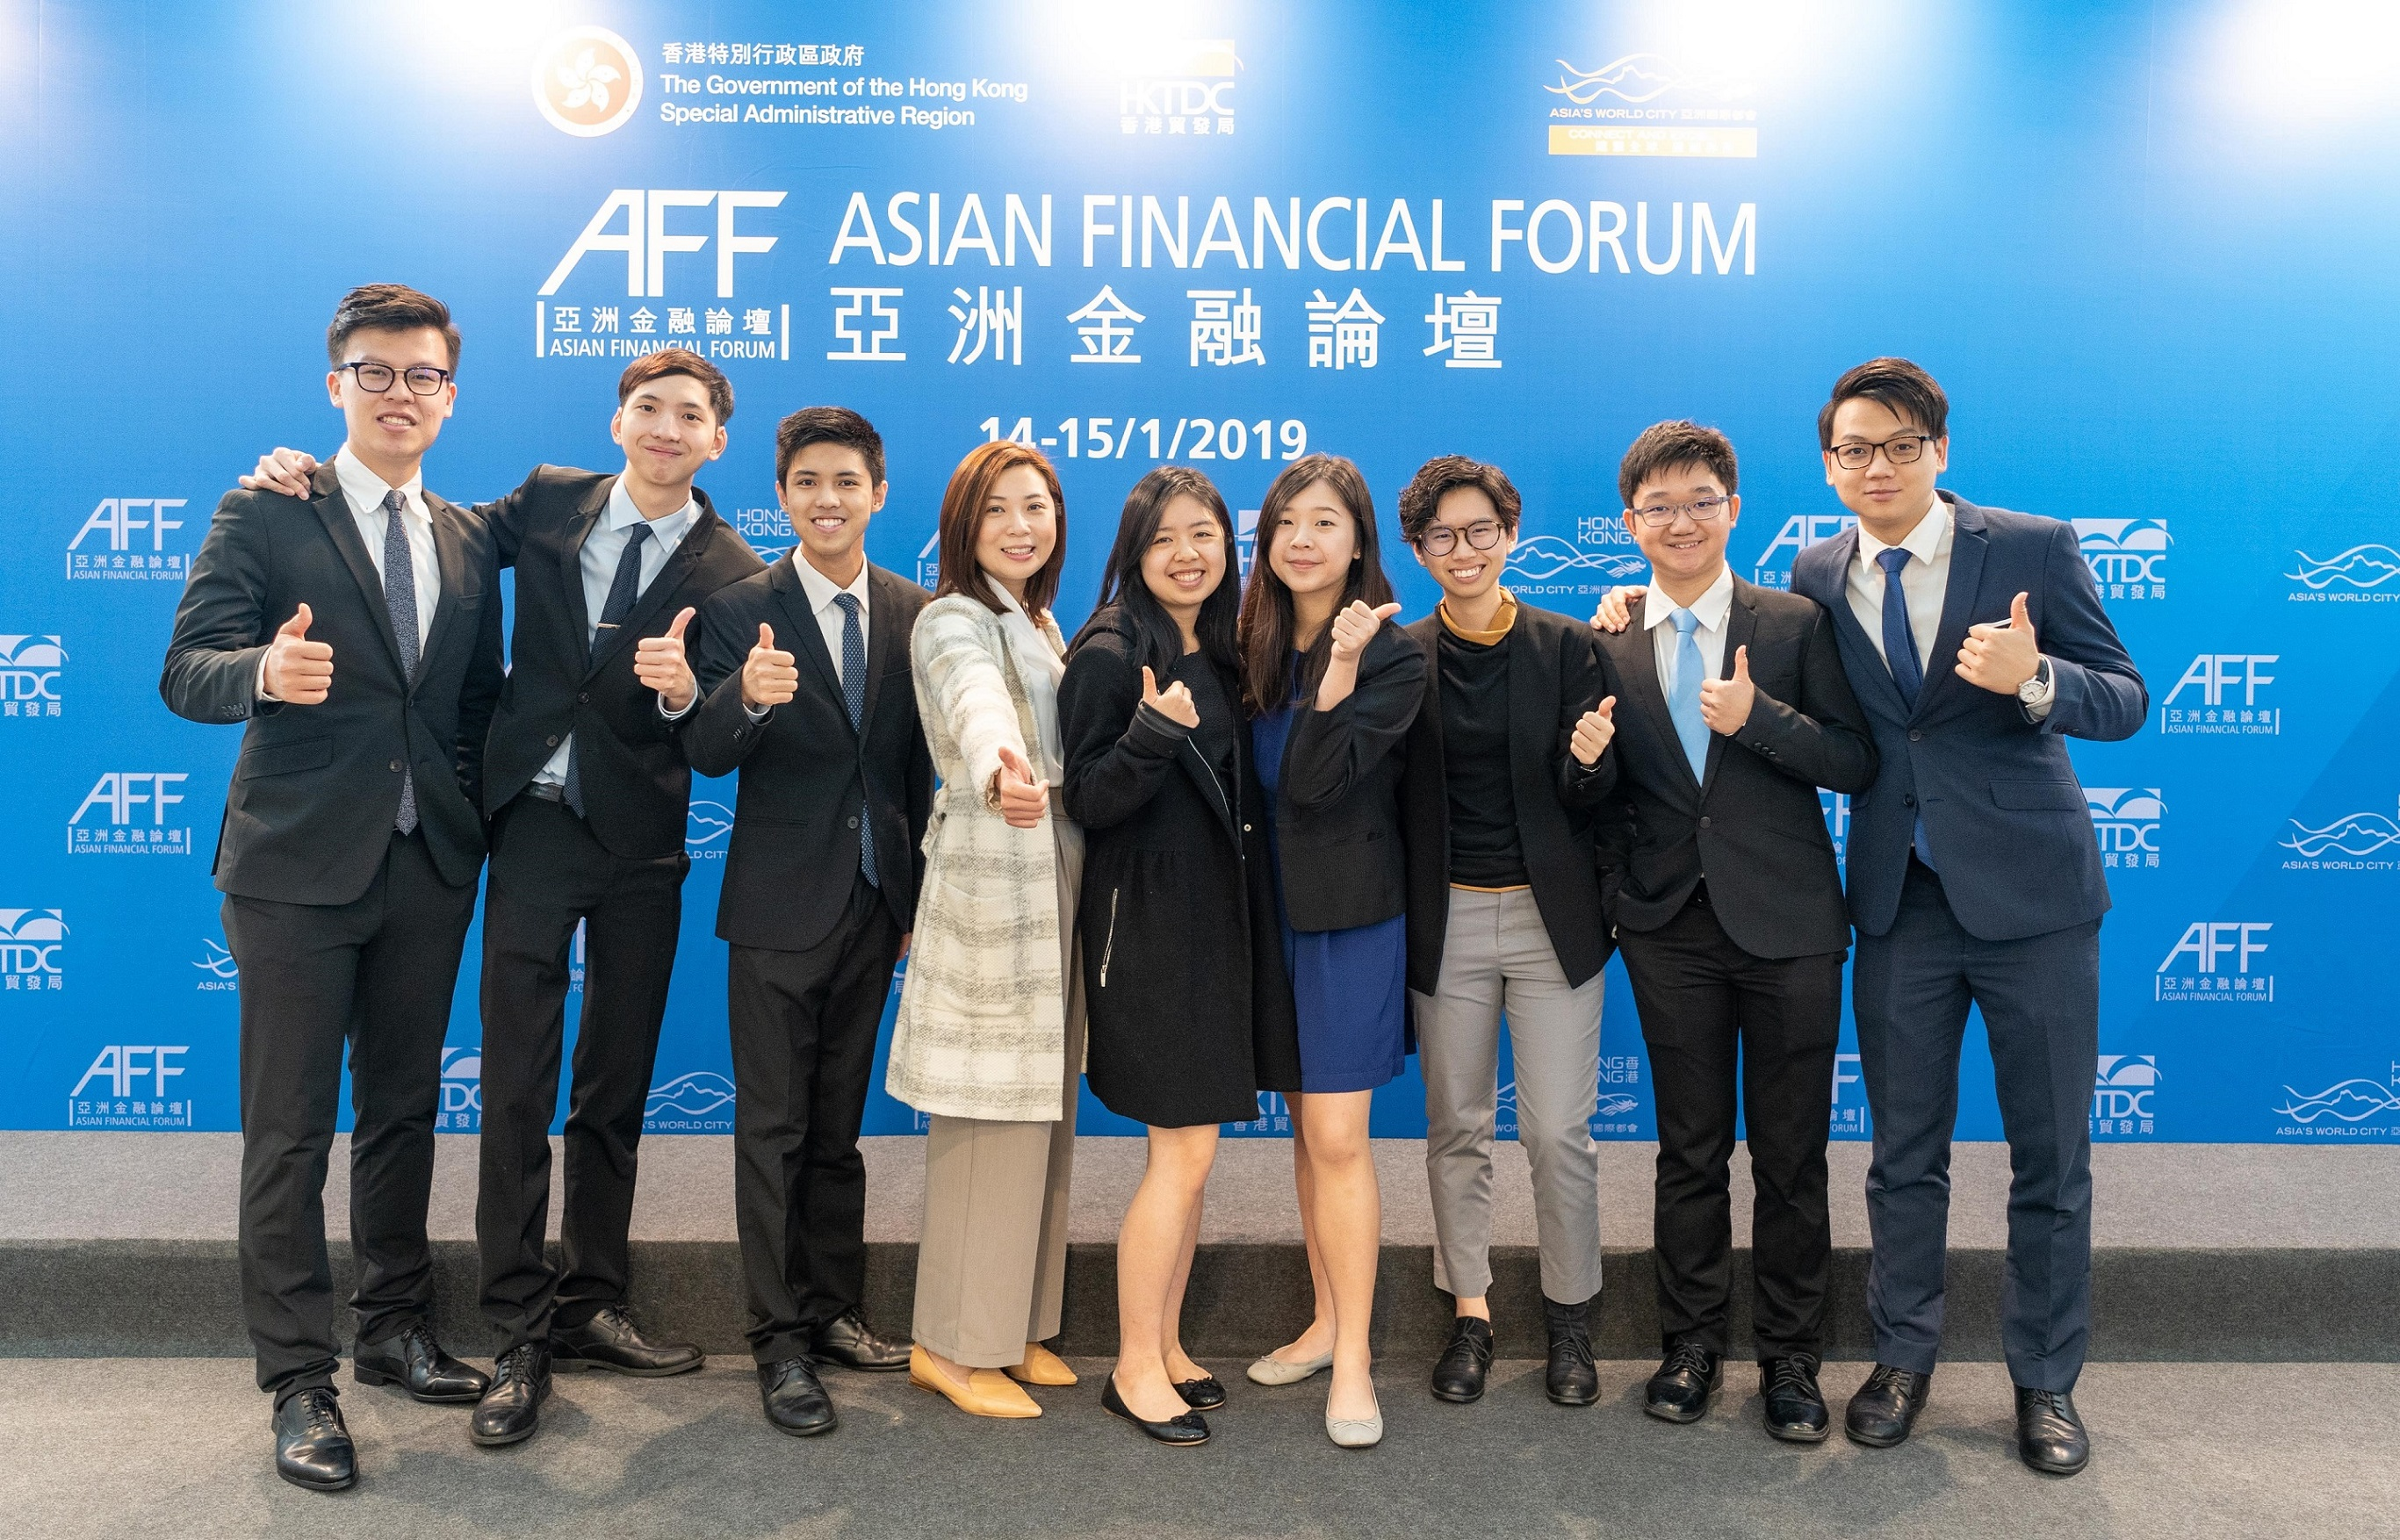 亚洲金融论坛(Asian Financial Forum)